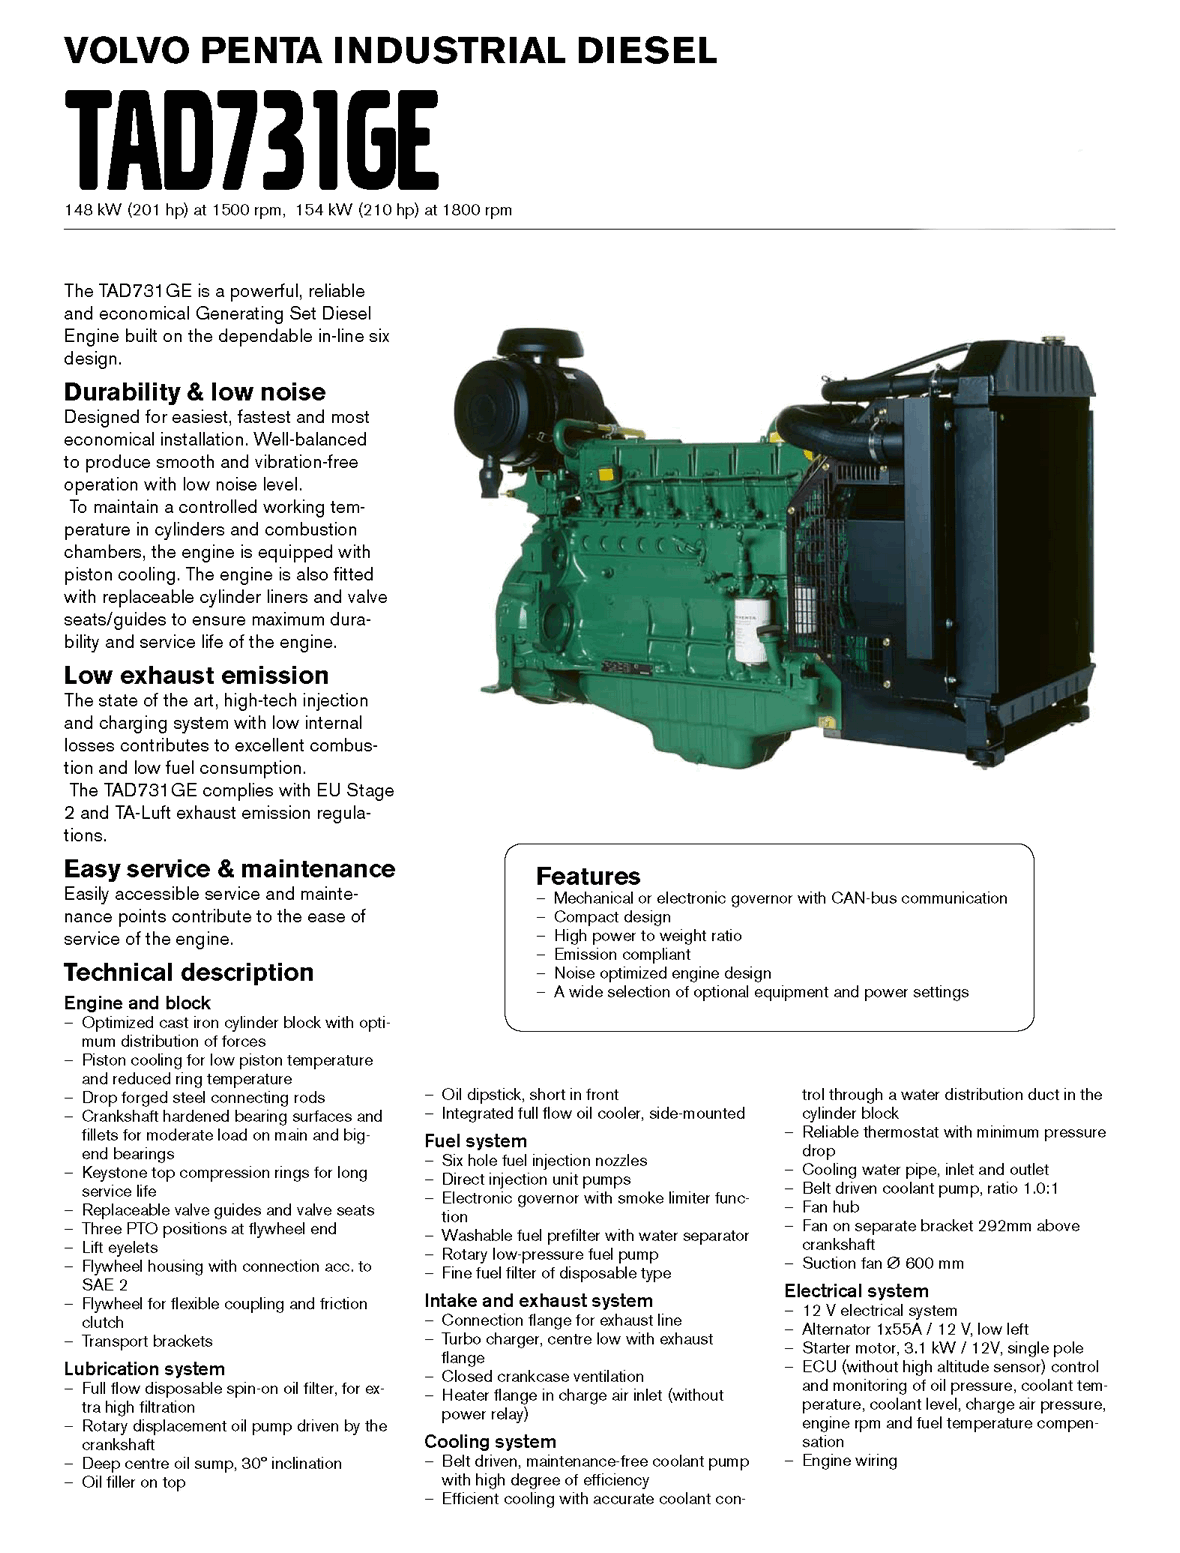 spec_engine_volvo_tad731ge_1.png